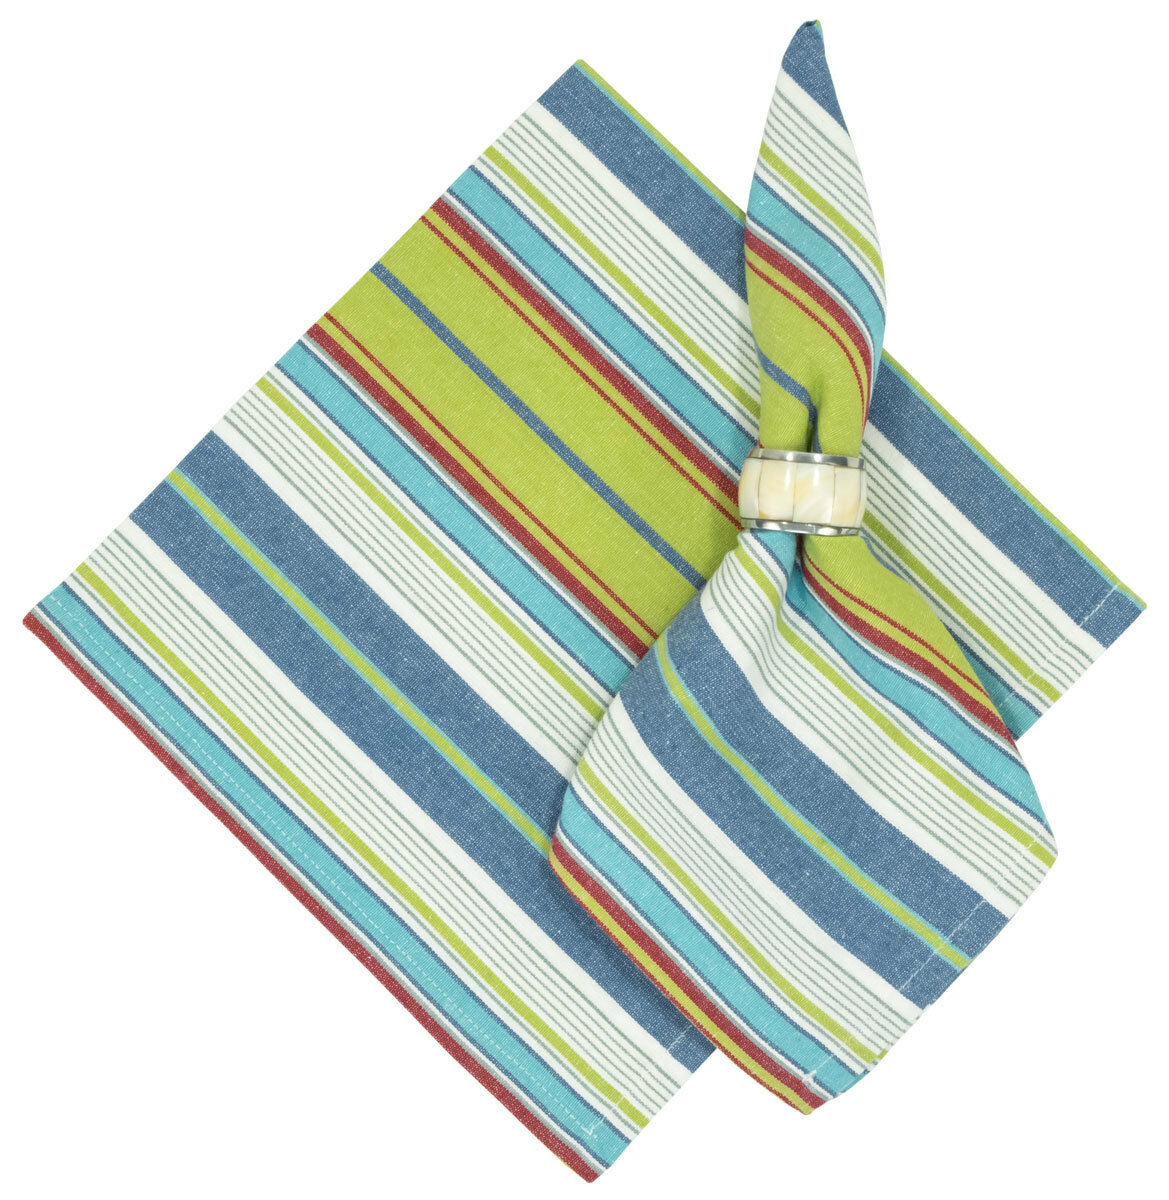 100% Cotton Grün Blau & rot Striped 22 x22  Napkins, Set of 6 - Clipper